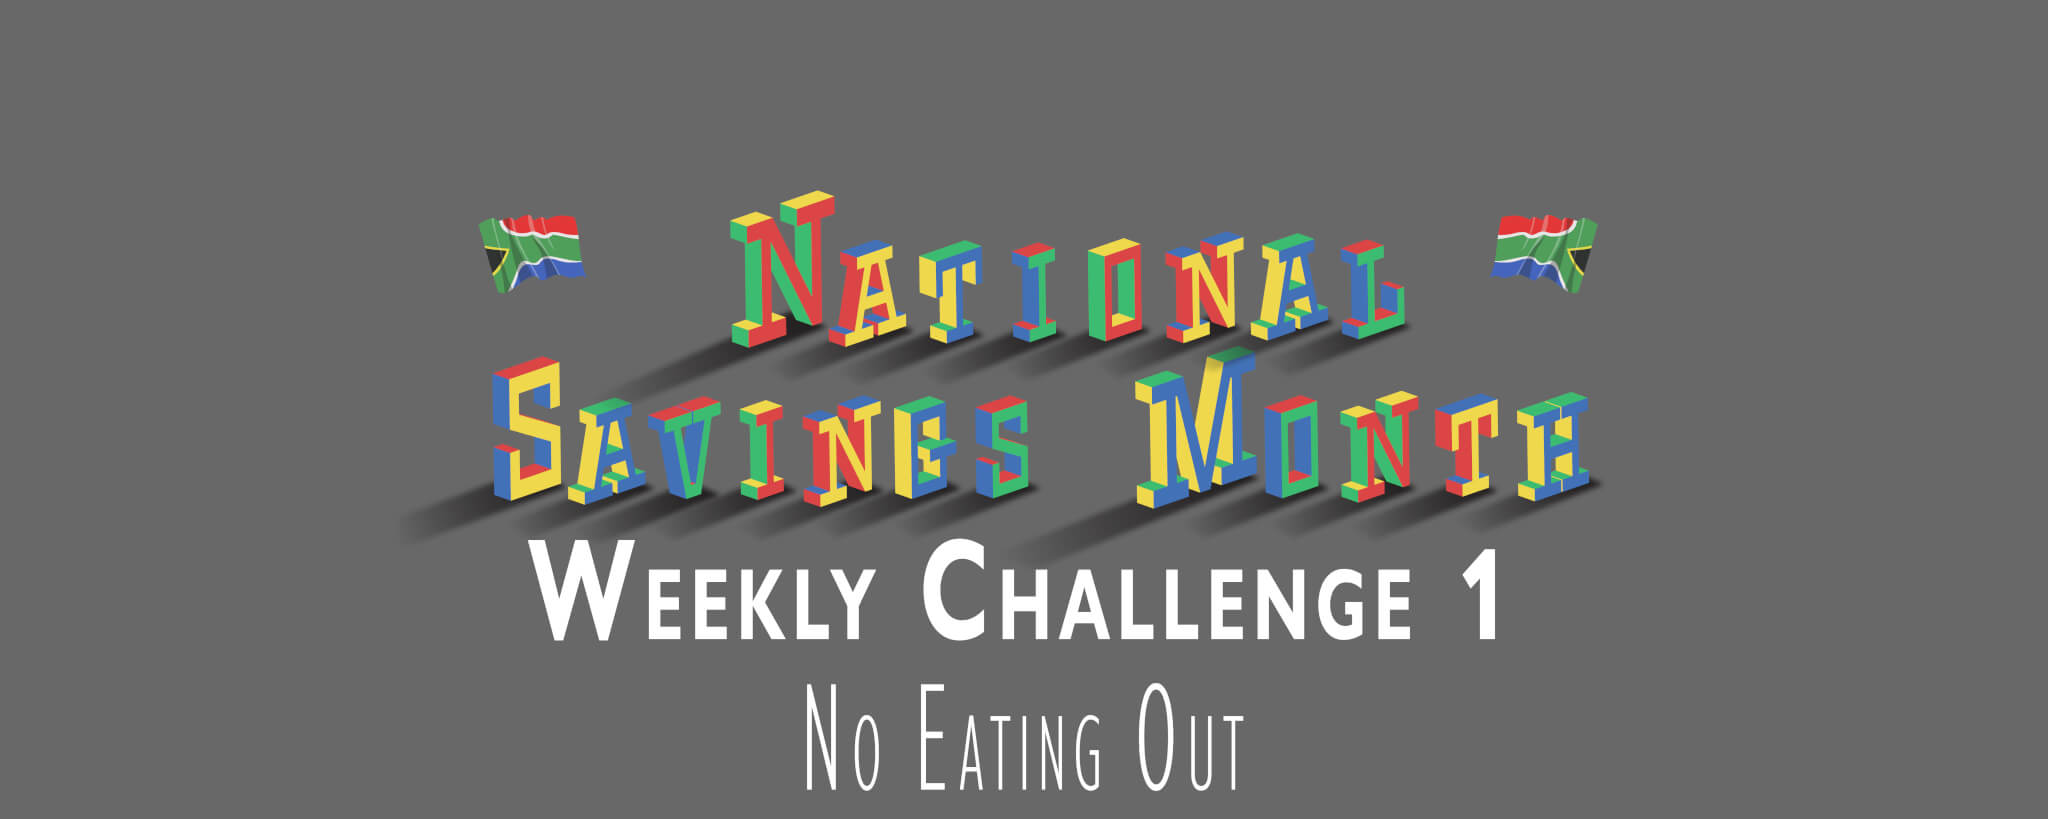 National Savings Month Weekly Challenge 1 - No Eating Out